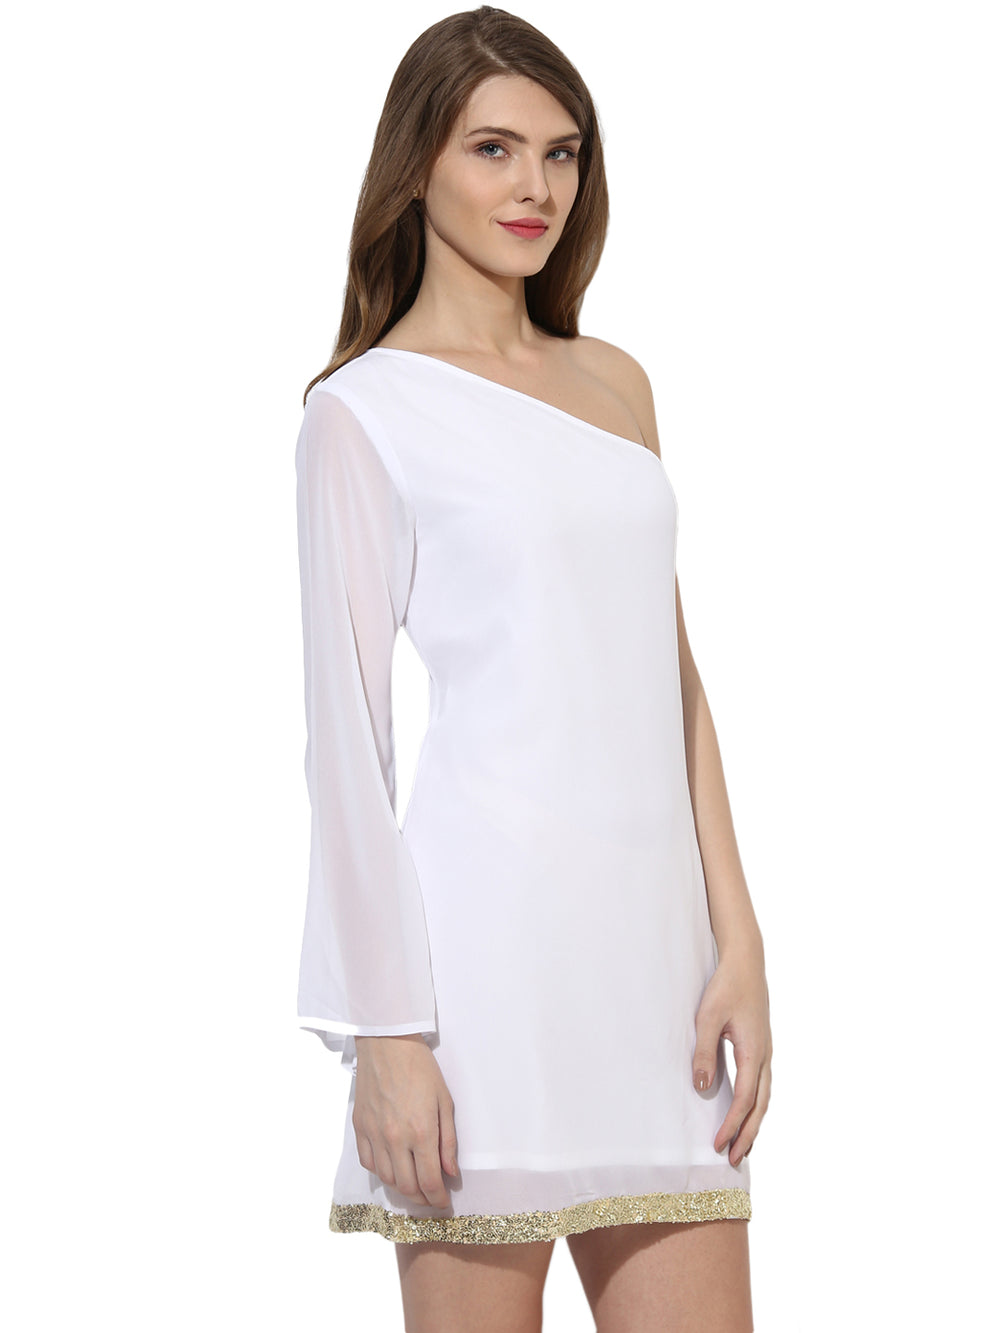 Besiva Women White Solid A-line One-Shoulder Dress